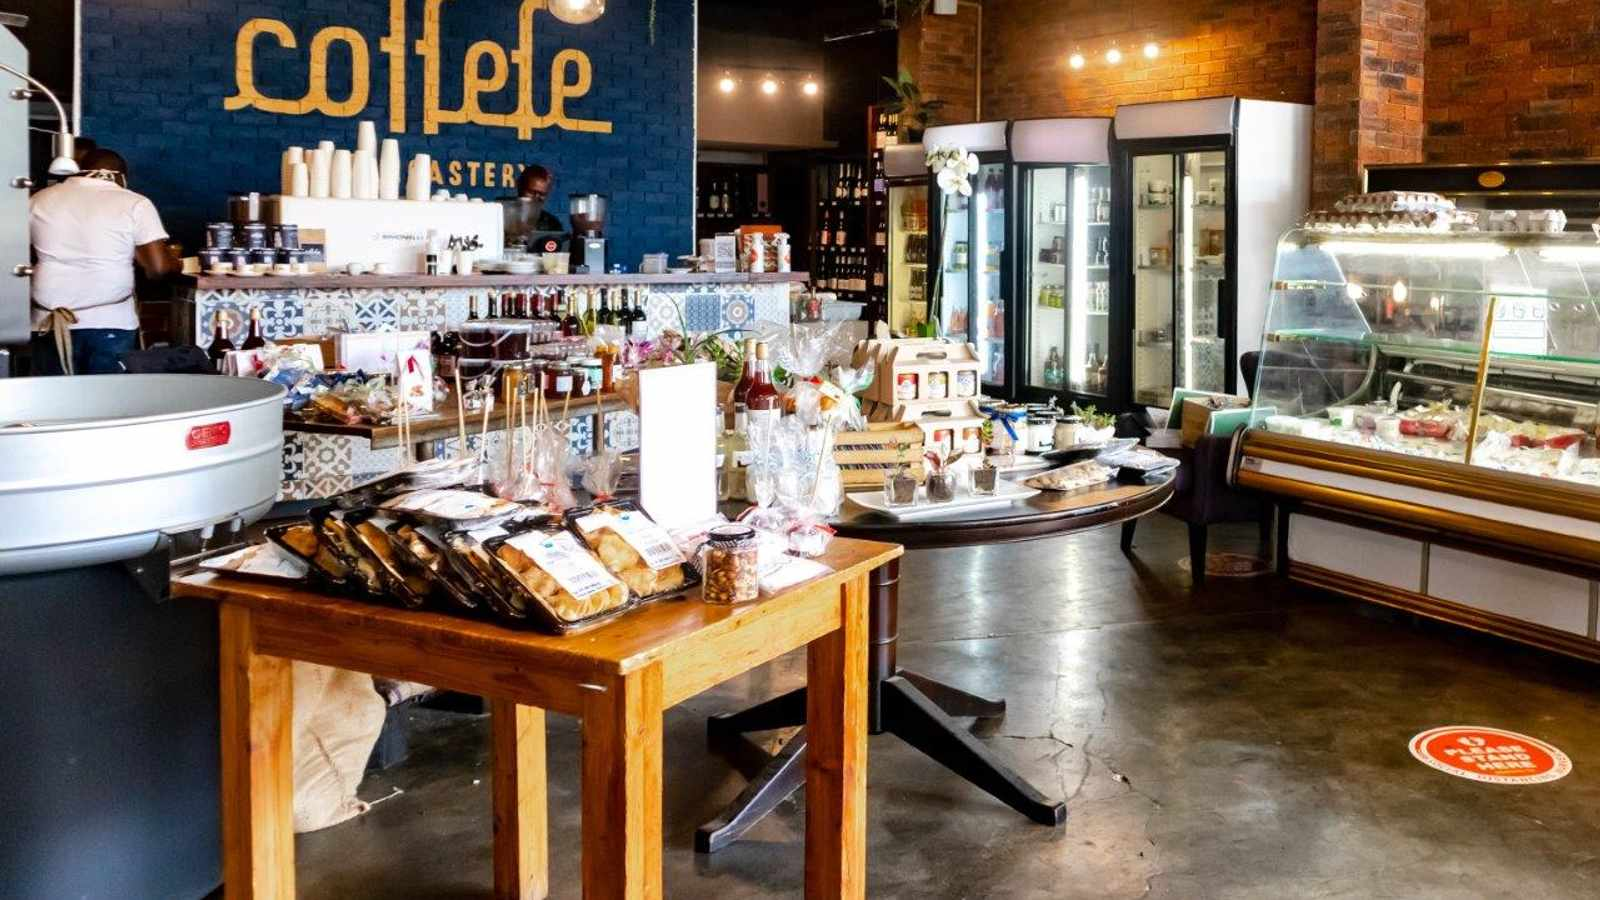 The Gourmet Grocer is a pandemic success story